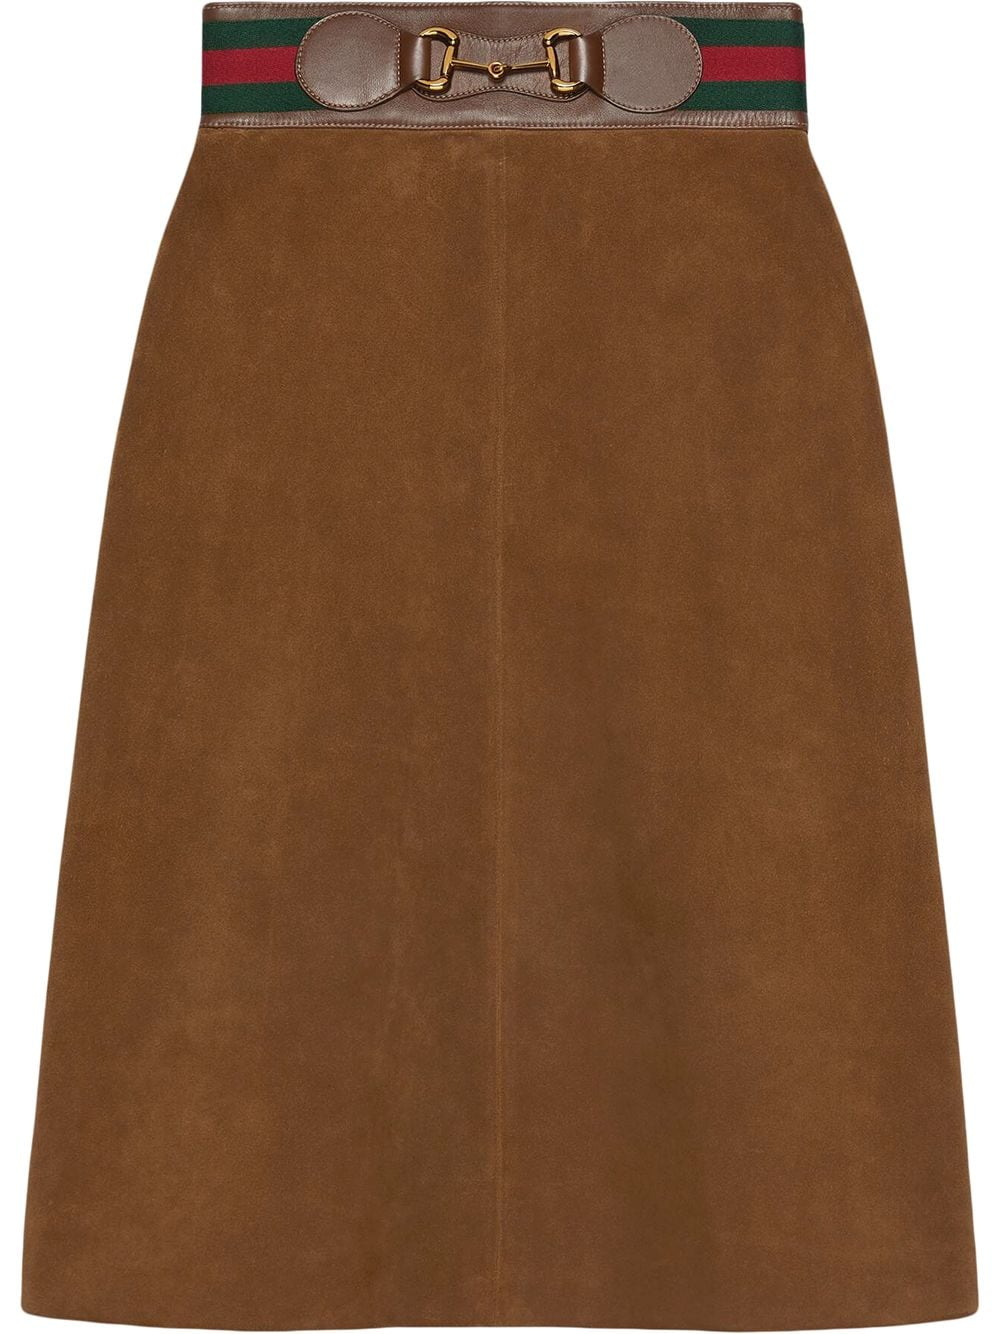 Picture of Gucci | Suede Skirt